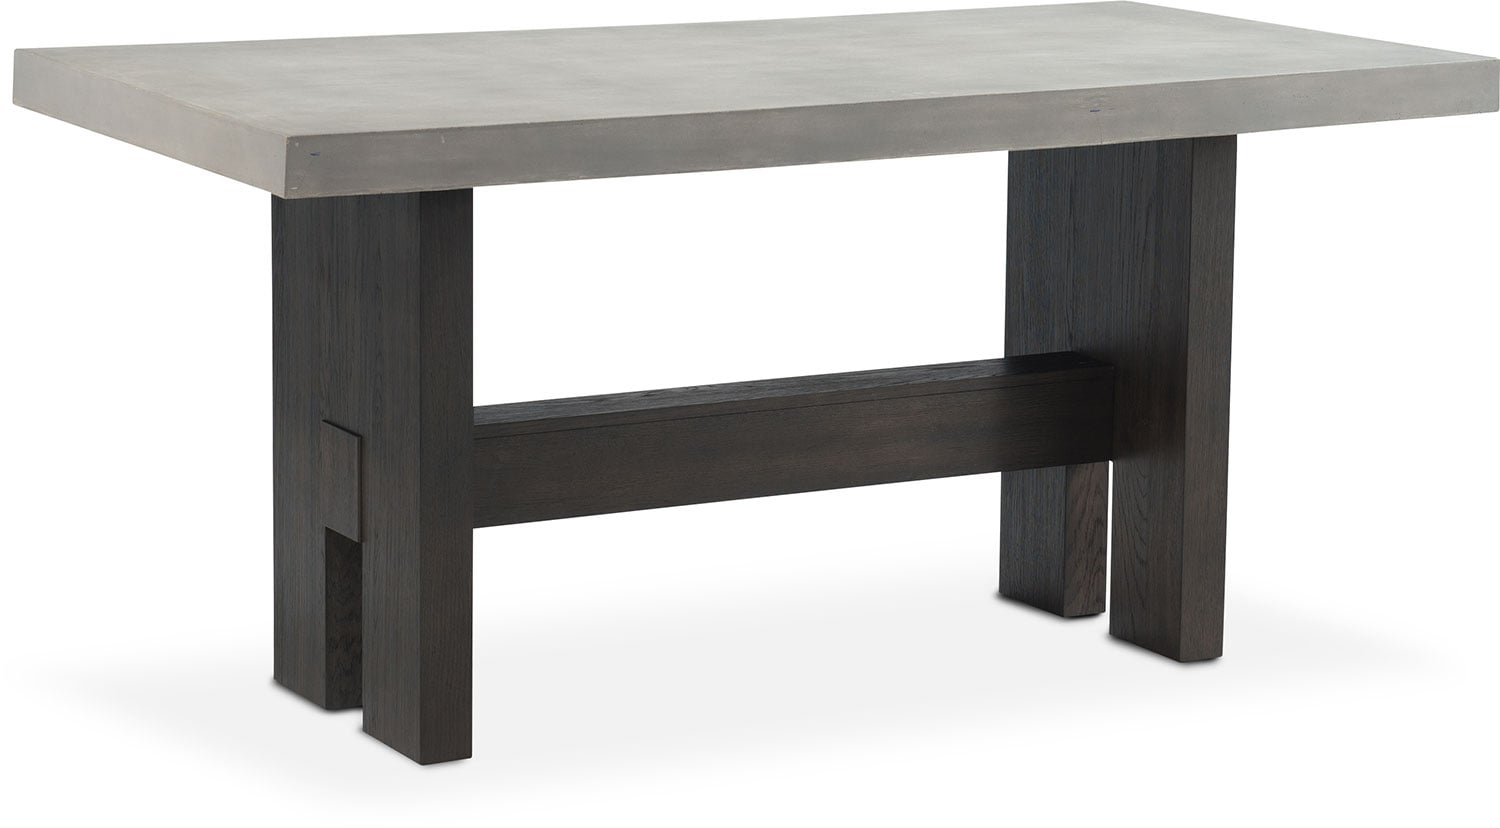 Malibu Rectangular Counter Height Concrete Top Table   Umber